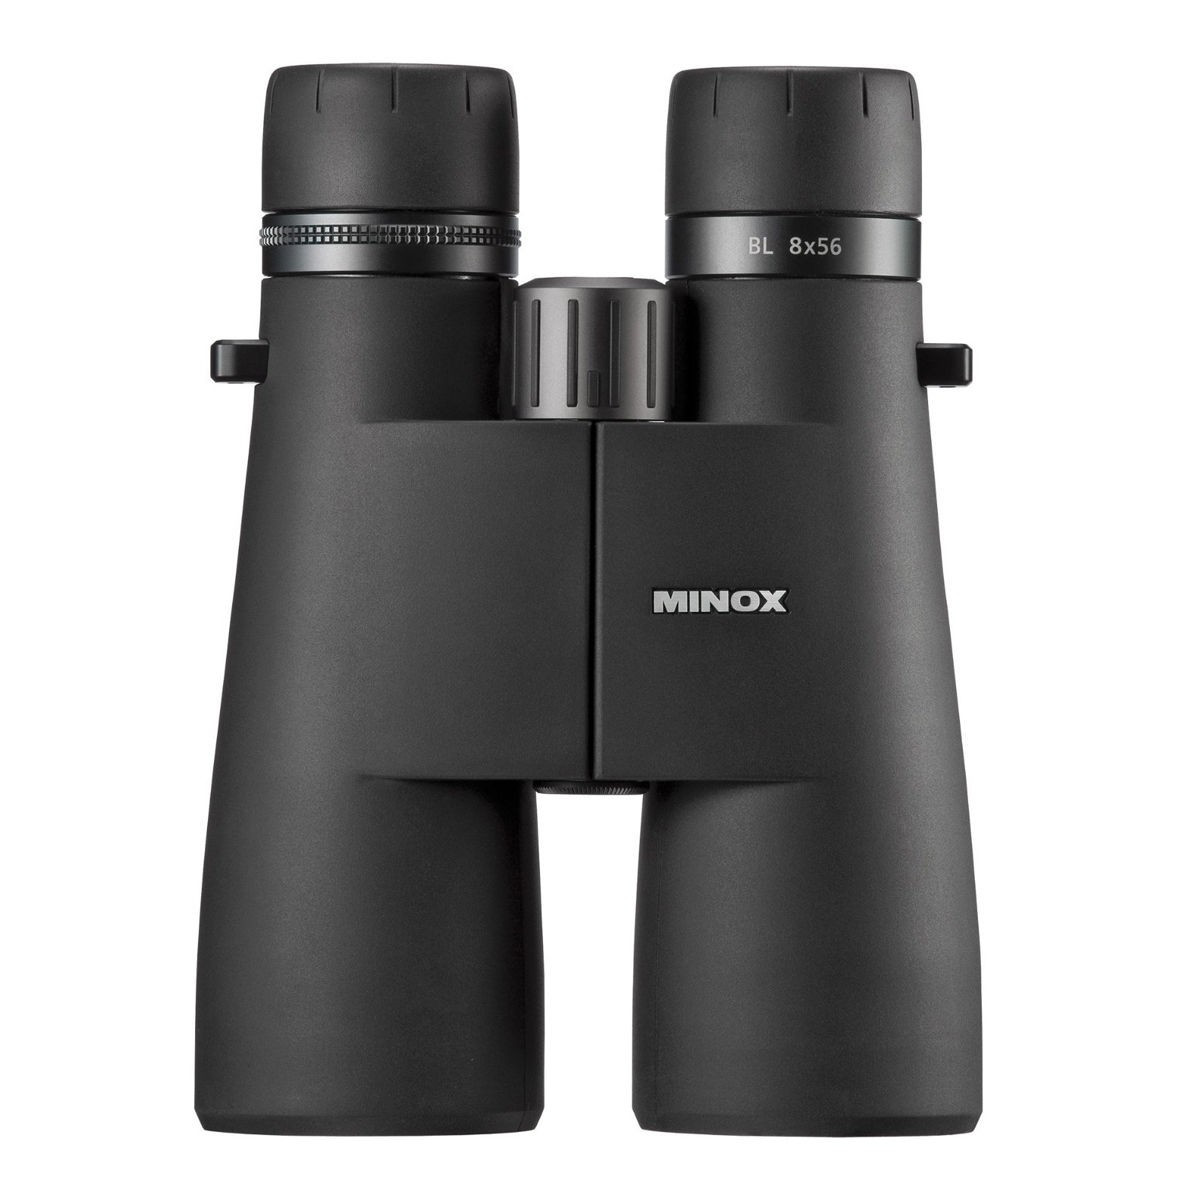 Minox Bl 8x56 Binocular 62043 Digital Outlet